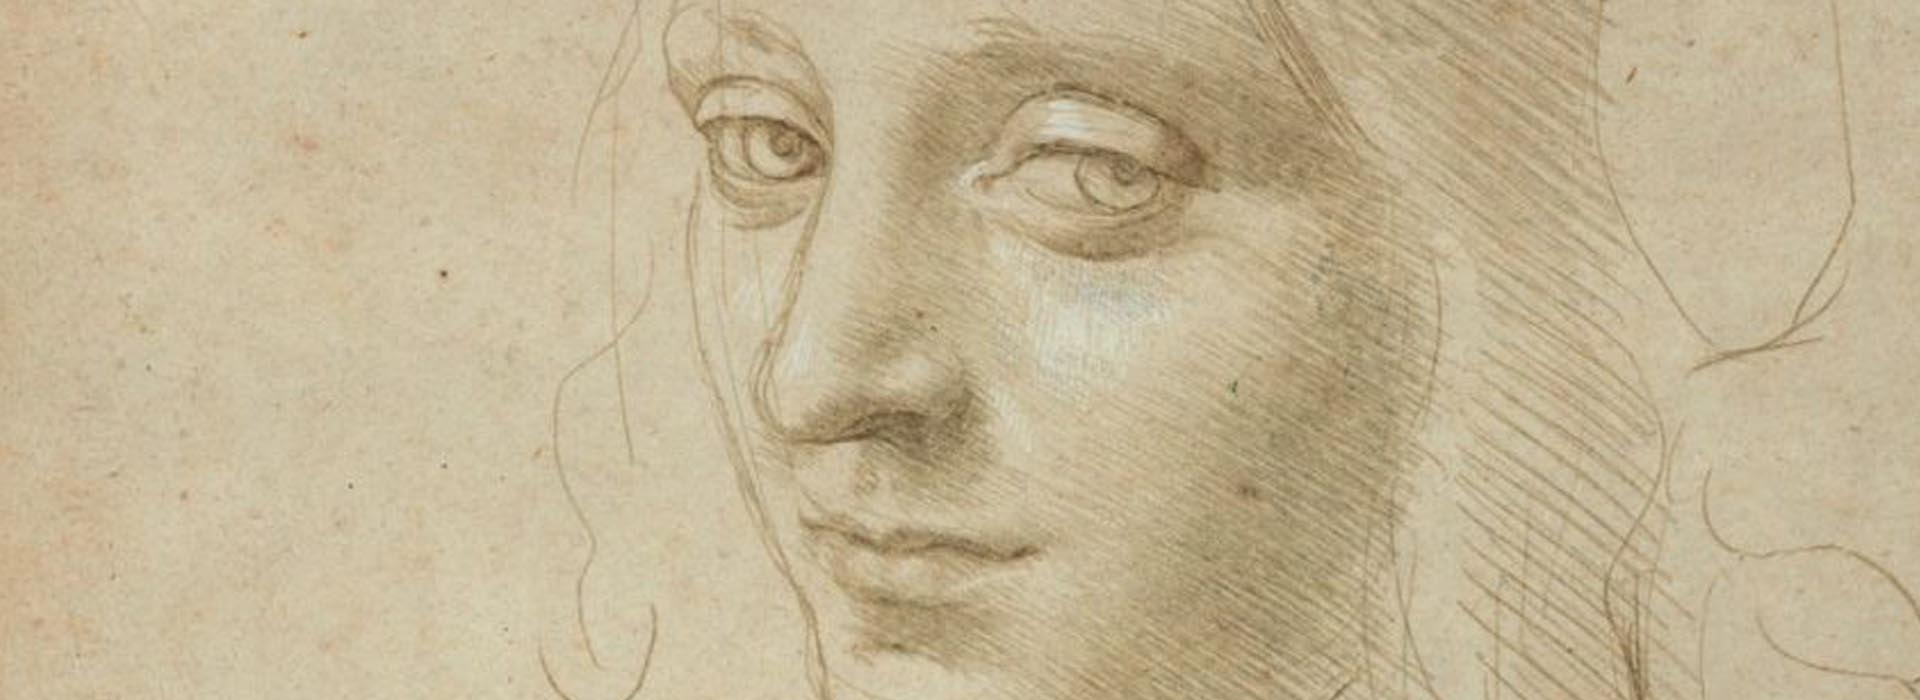 LEONARDO DA VINCI: TREASURES FROM THE ROYAL LIBRARY, TURIN